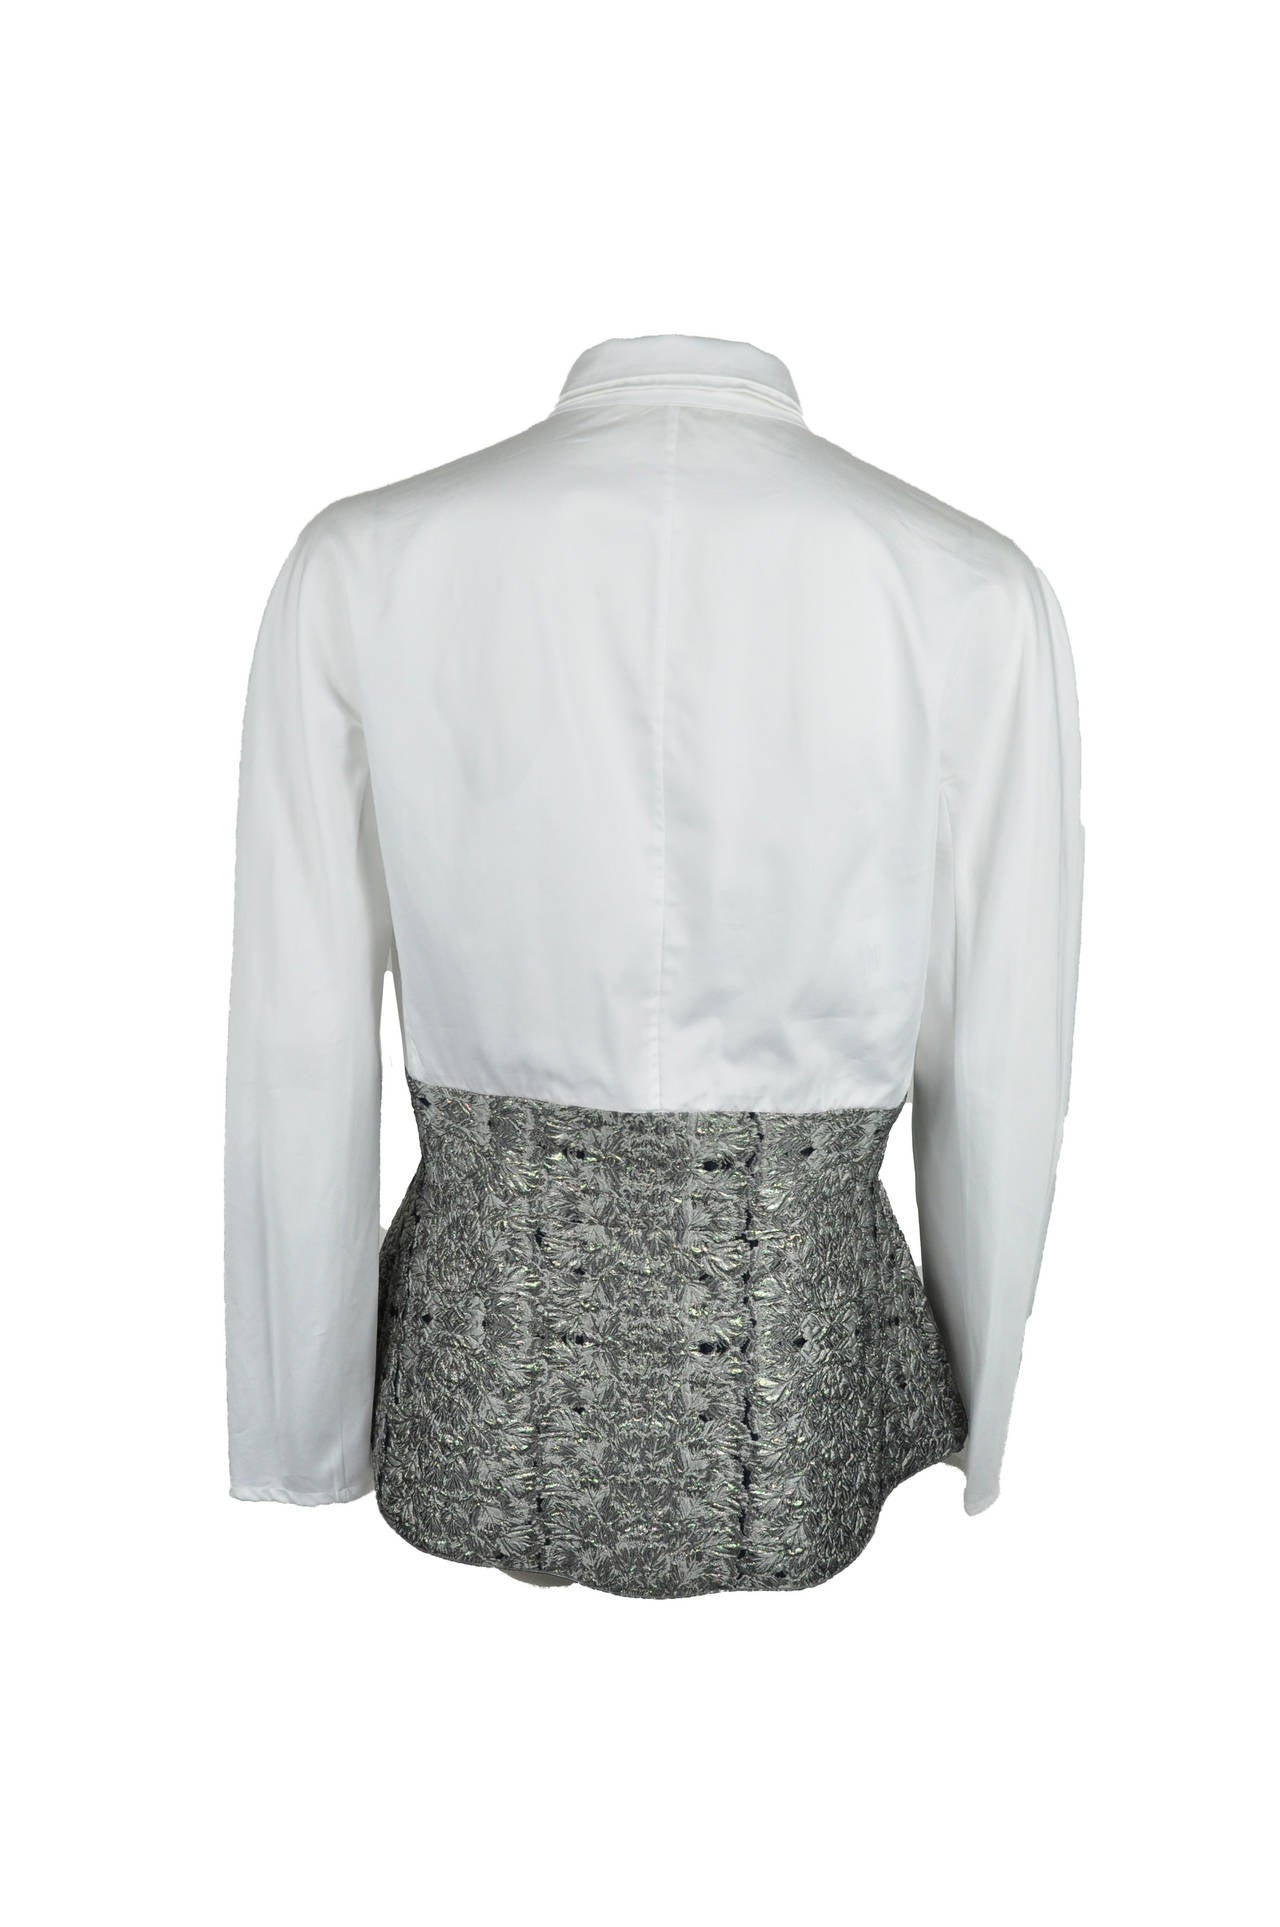 Antonio Berardi White Blouse With Boucle Peplum 2